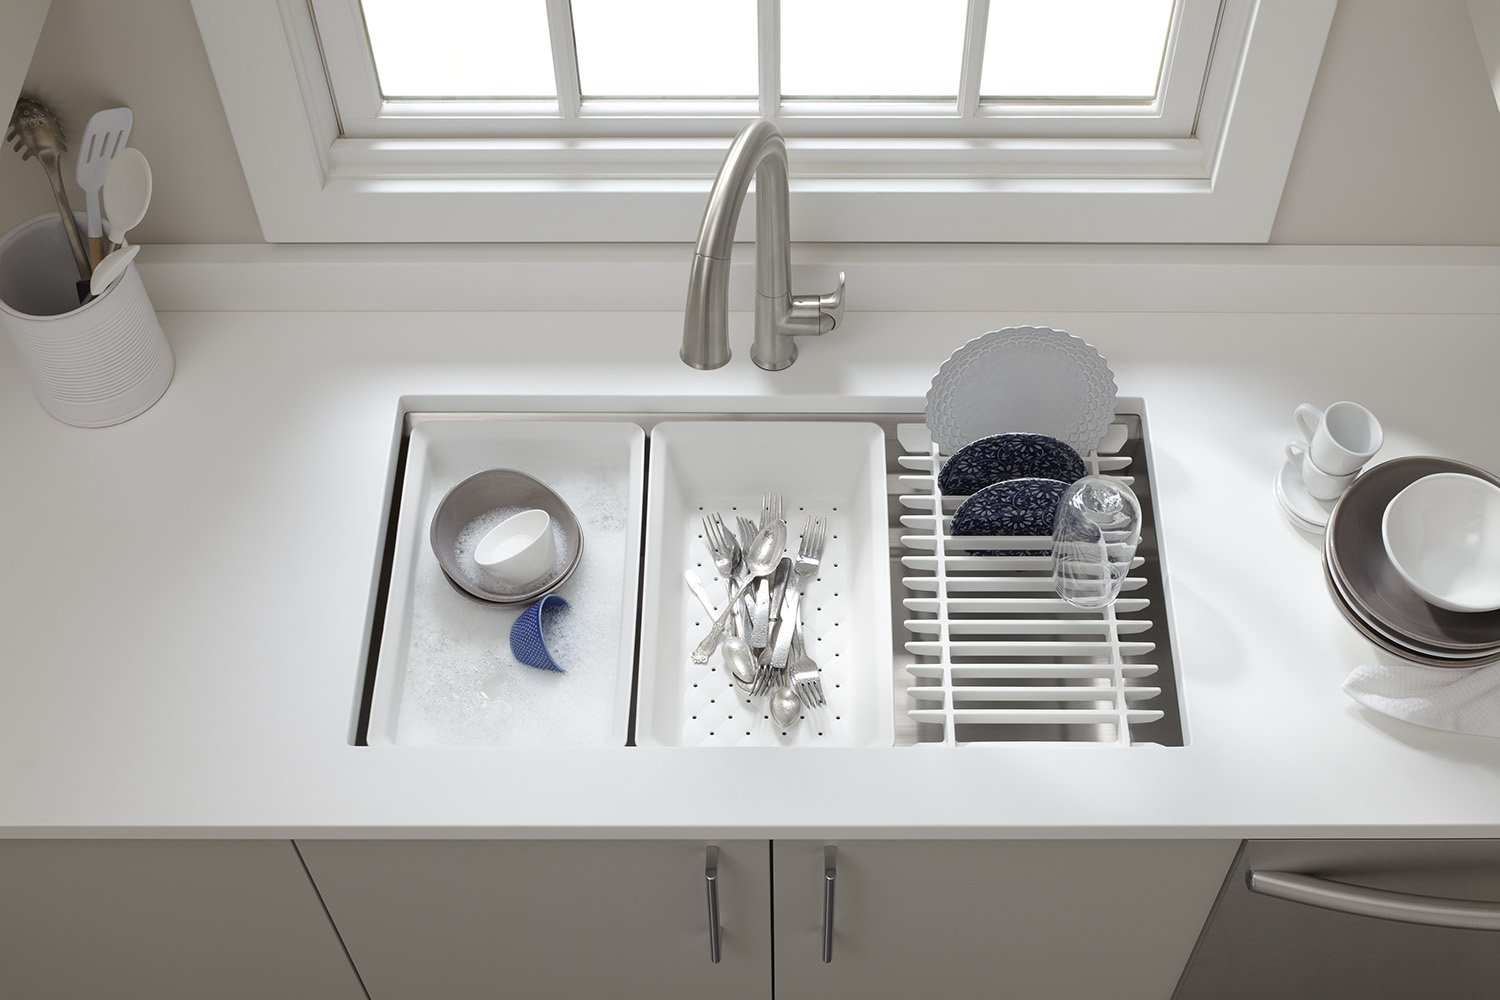 kohler prolific kitchen sink review